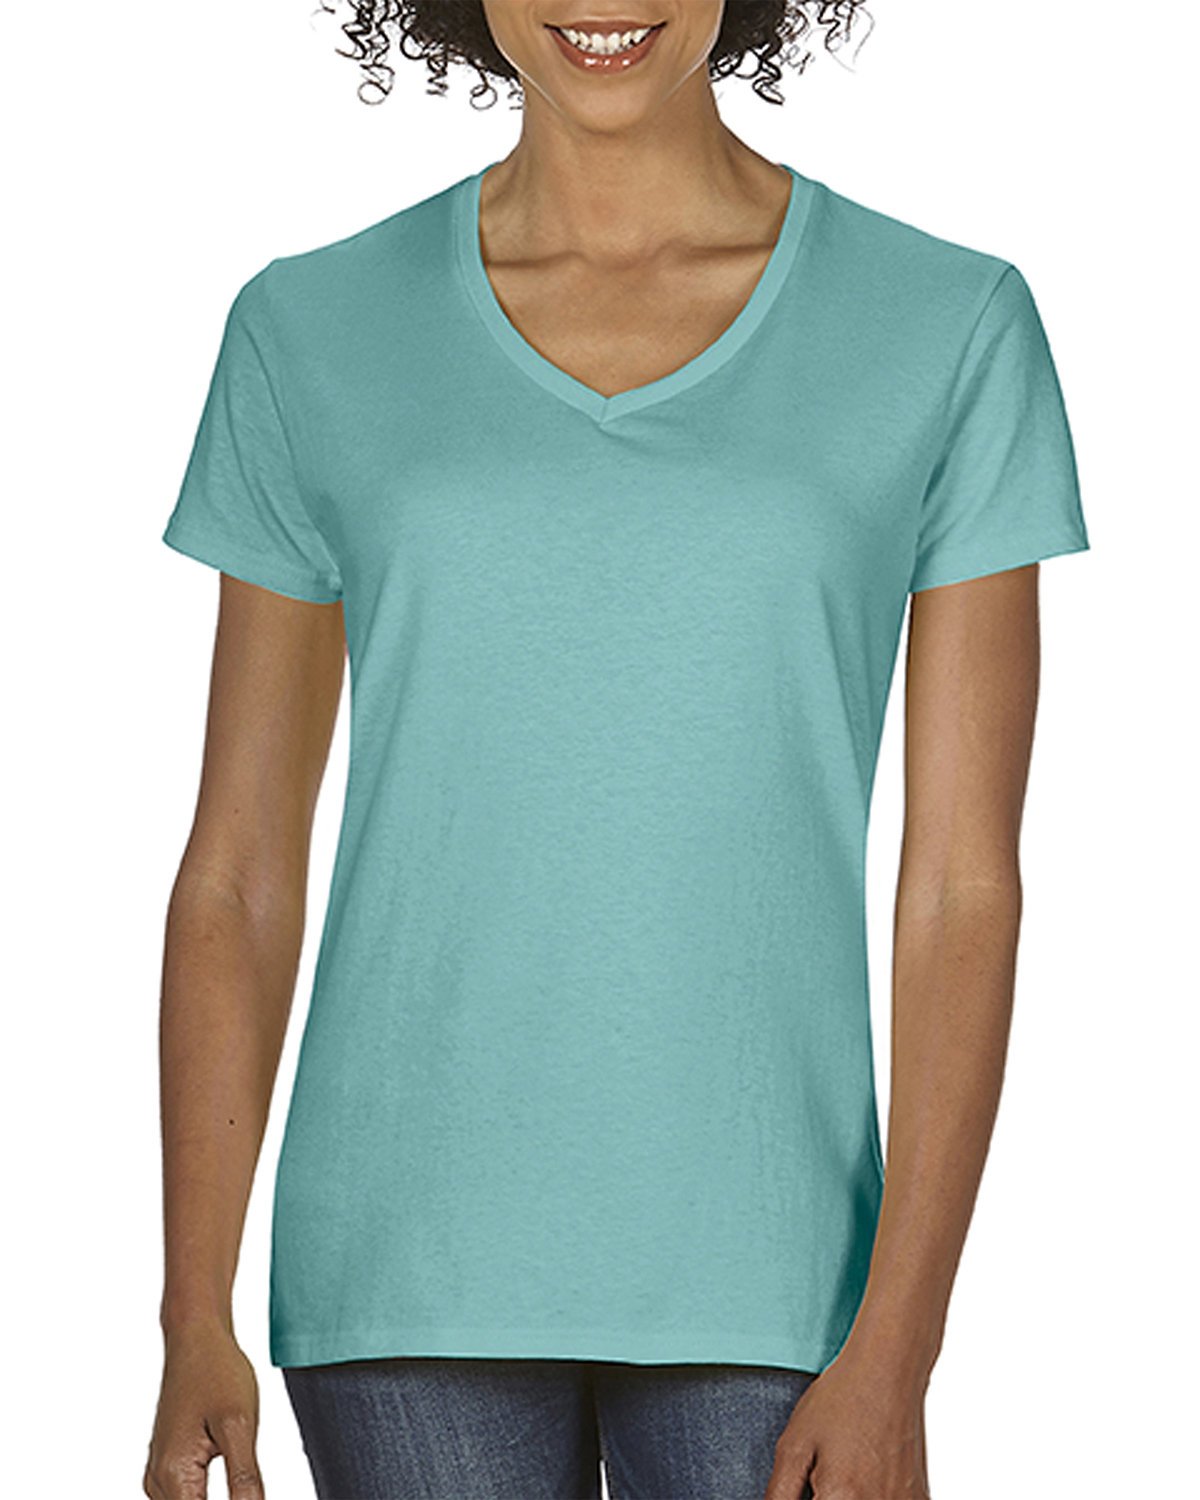 Comfort Colors Ladies'  Midweight RS V-Neck T-Shirt ISLAND REEF